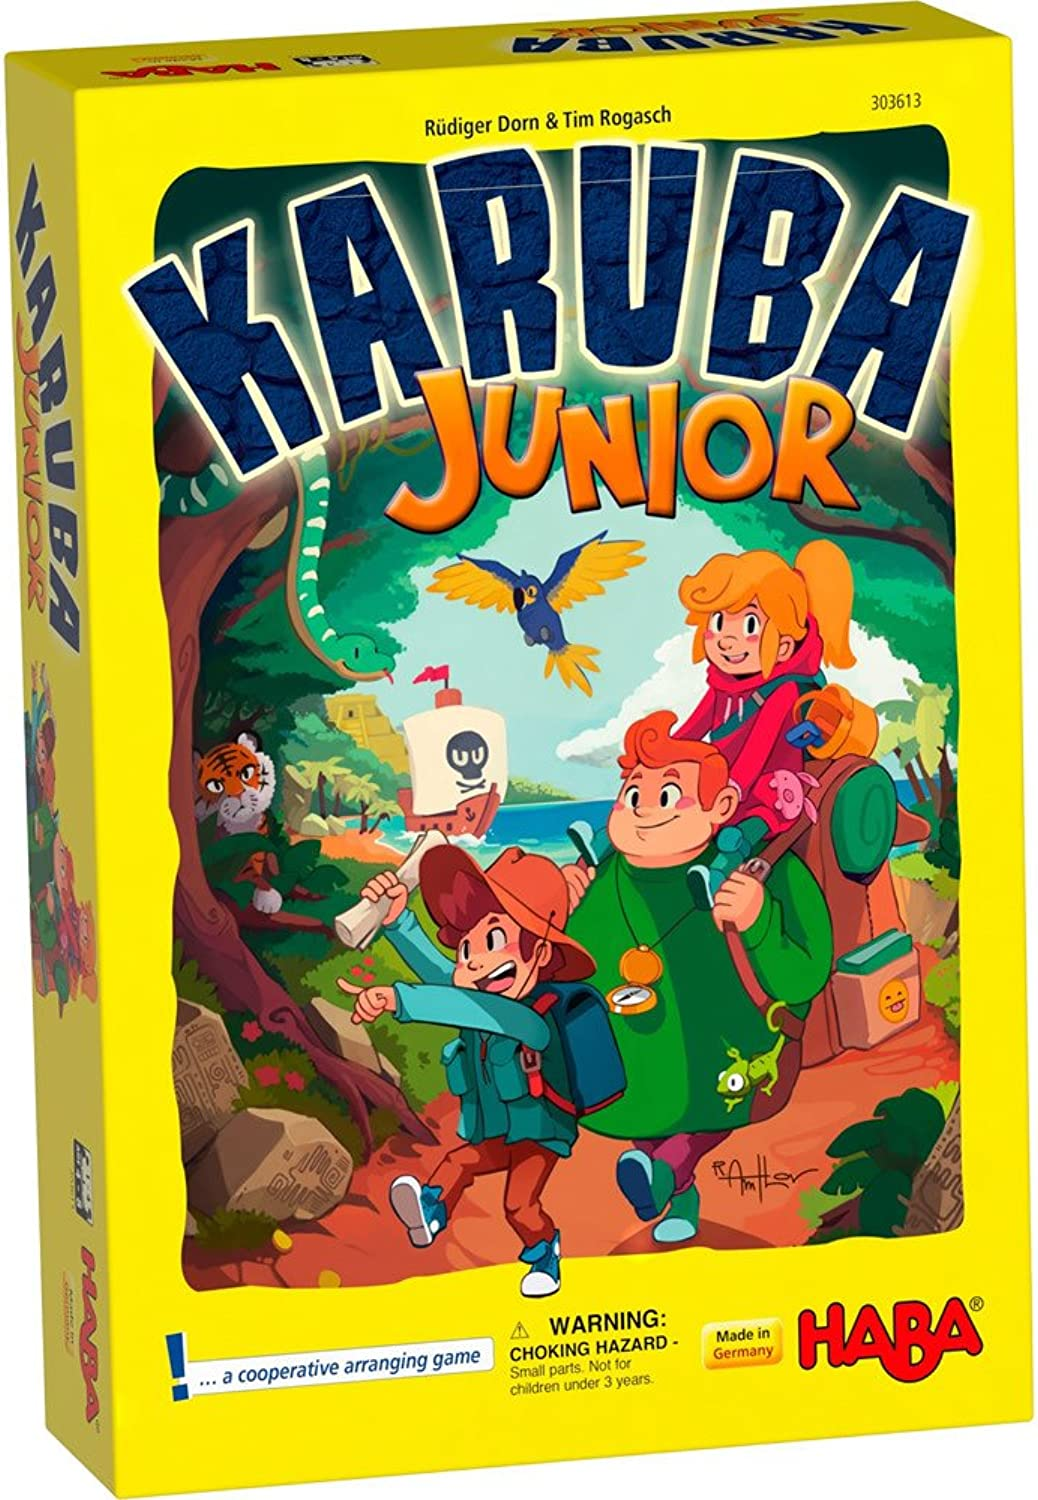 HABA Karuba Junior - A Cooperative Arranging Game Ages 4-8 (Made in Germany)